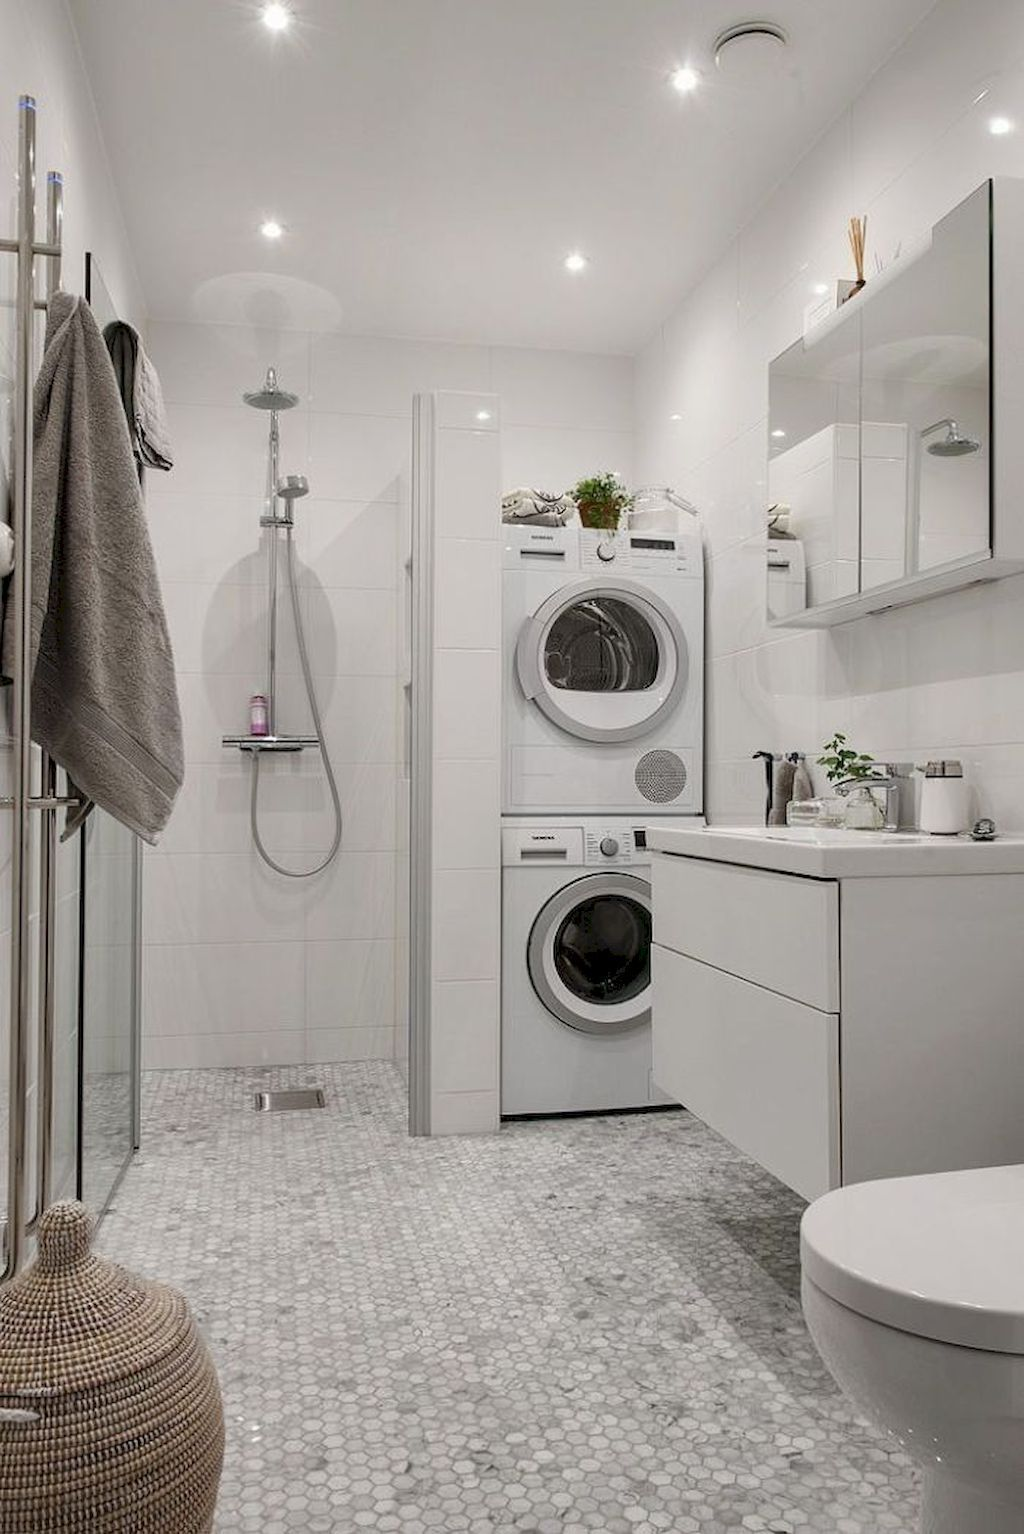 59 functional small laundry room design ideas #remodelingorroomdesign